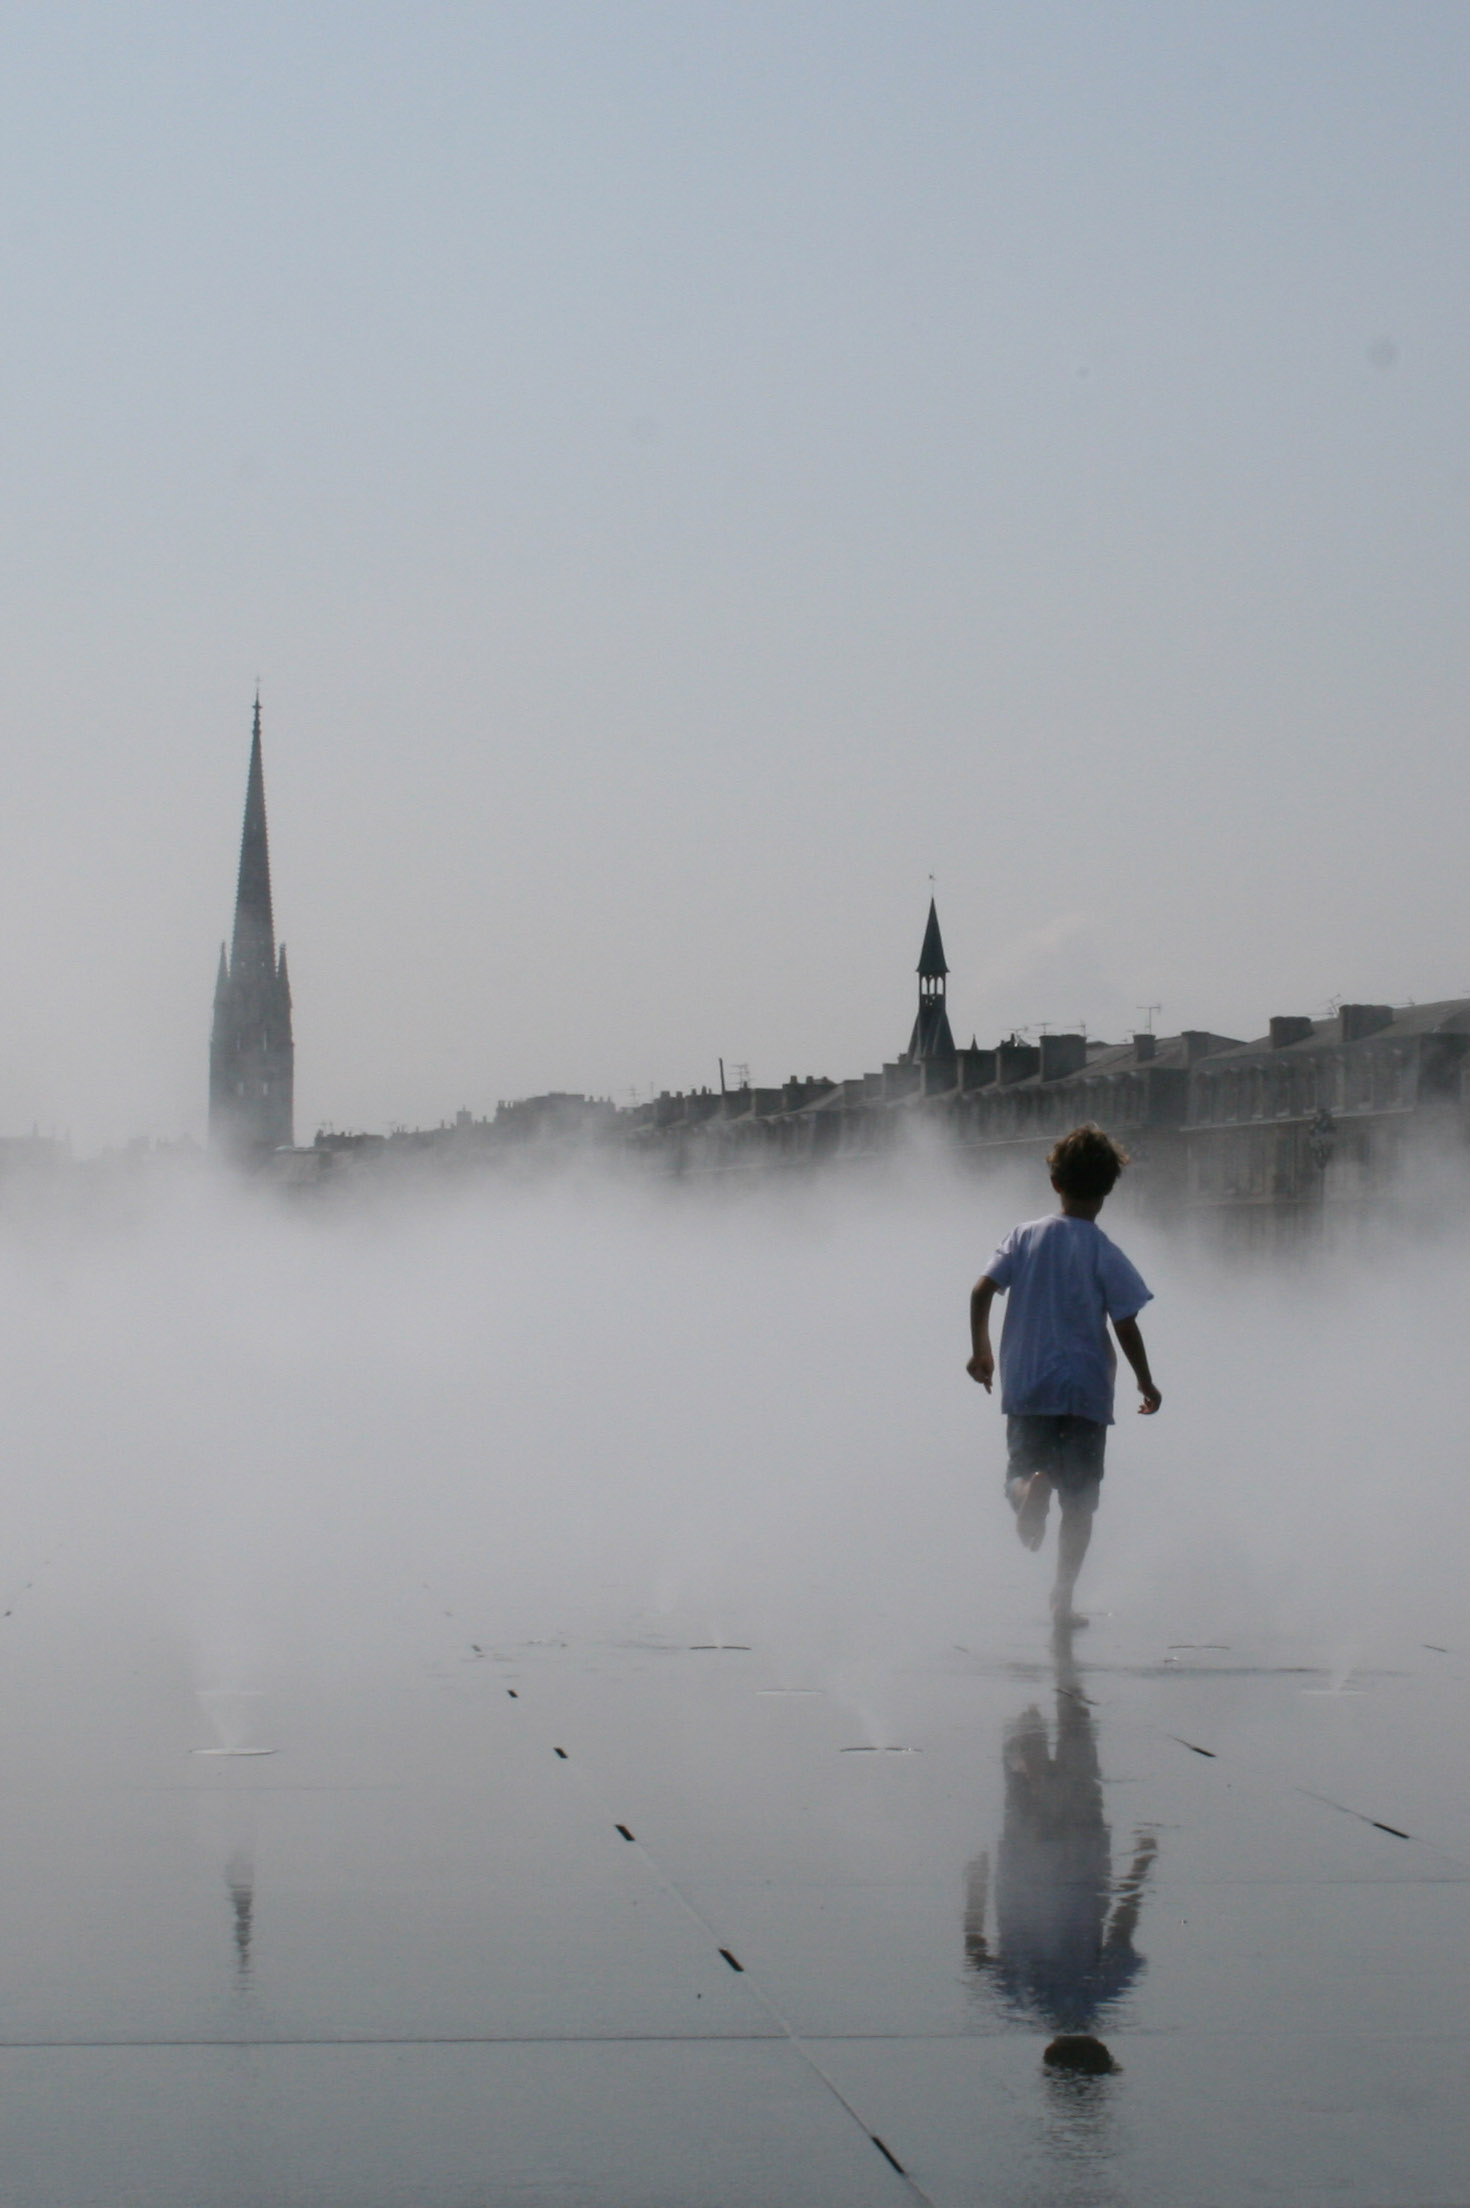 http://www.freemages.fr/album/bordeaux/bourse_miroir_brume.jpg